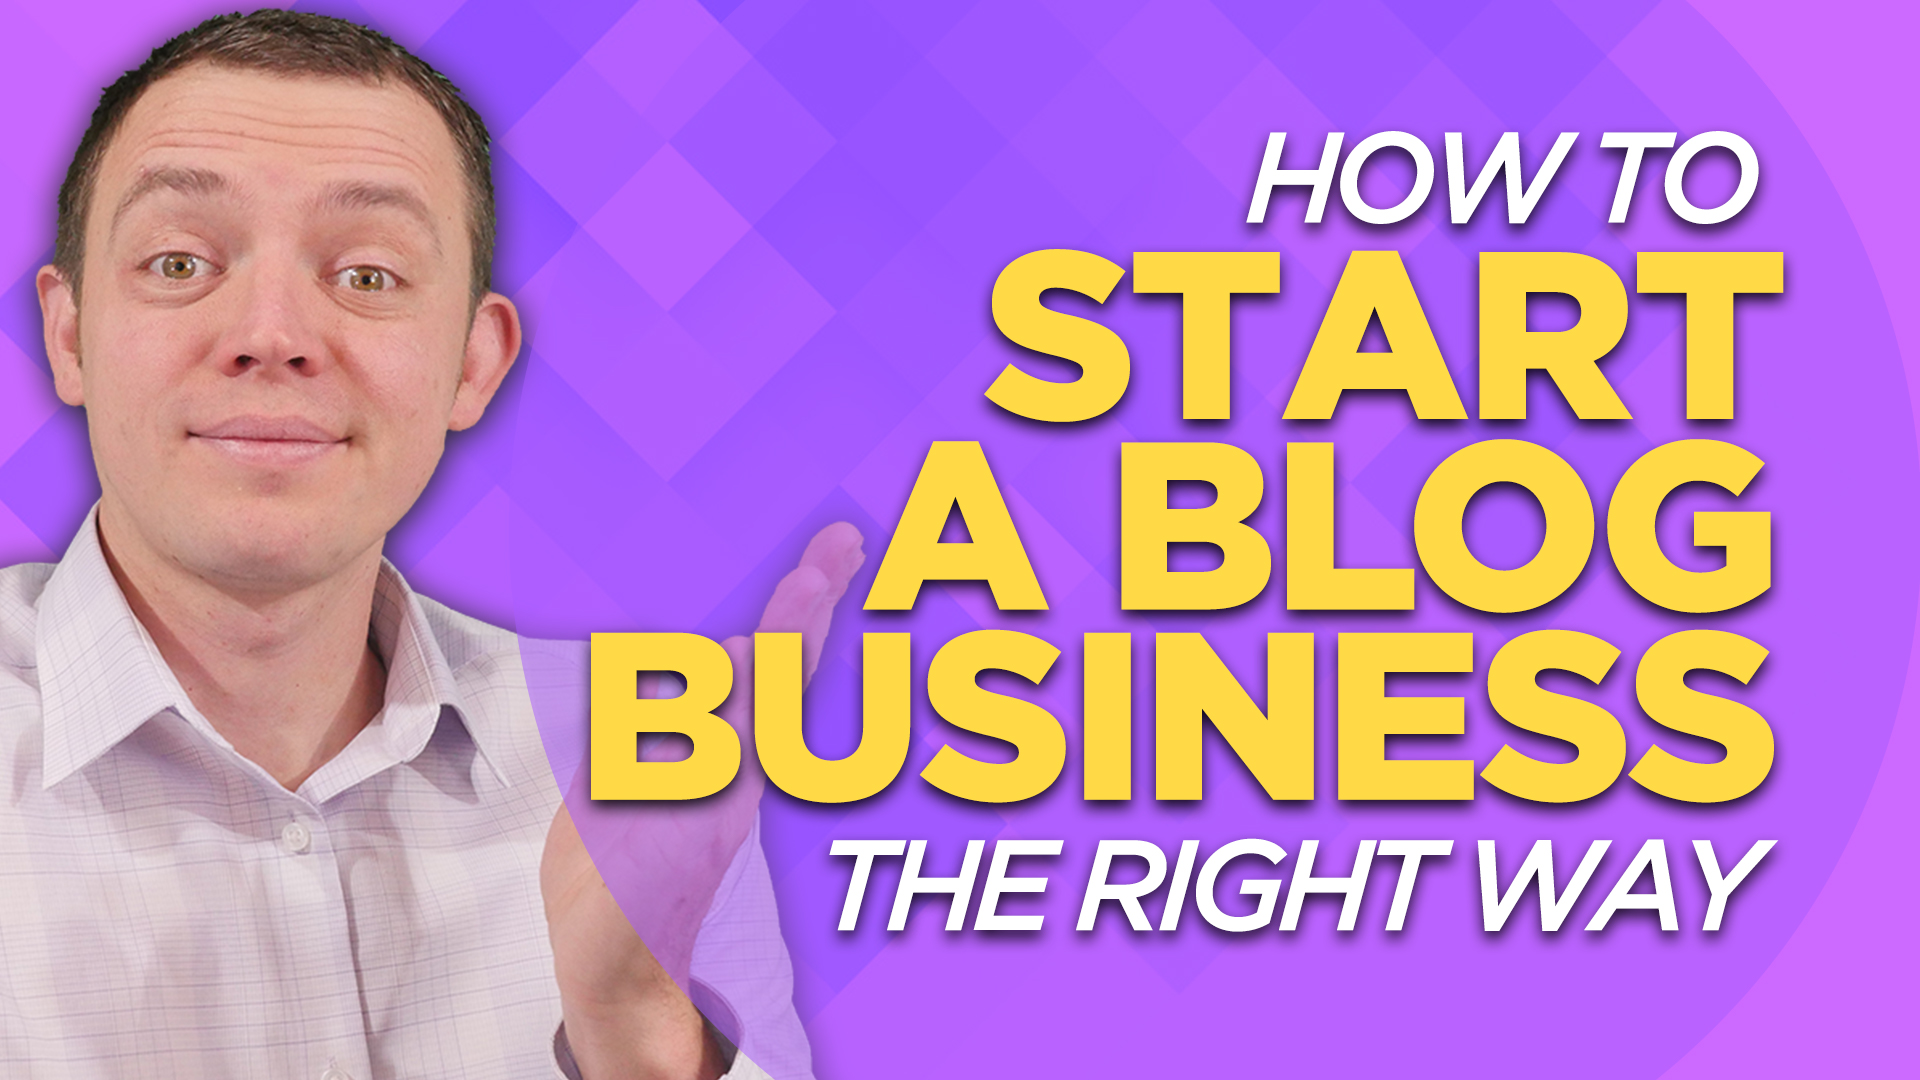 Want to Start Your Blog Business the Right Way and Make Money? ⌚ 24 Hrs Reminder